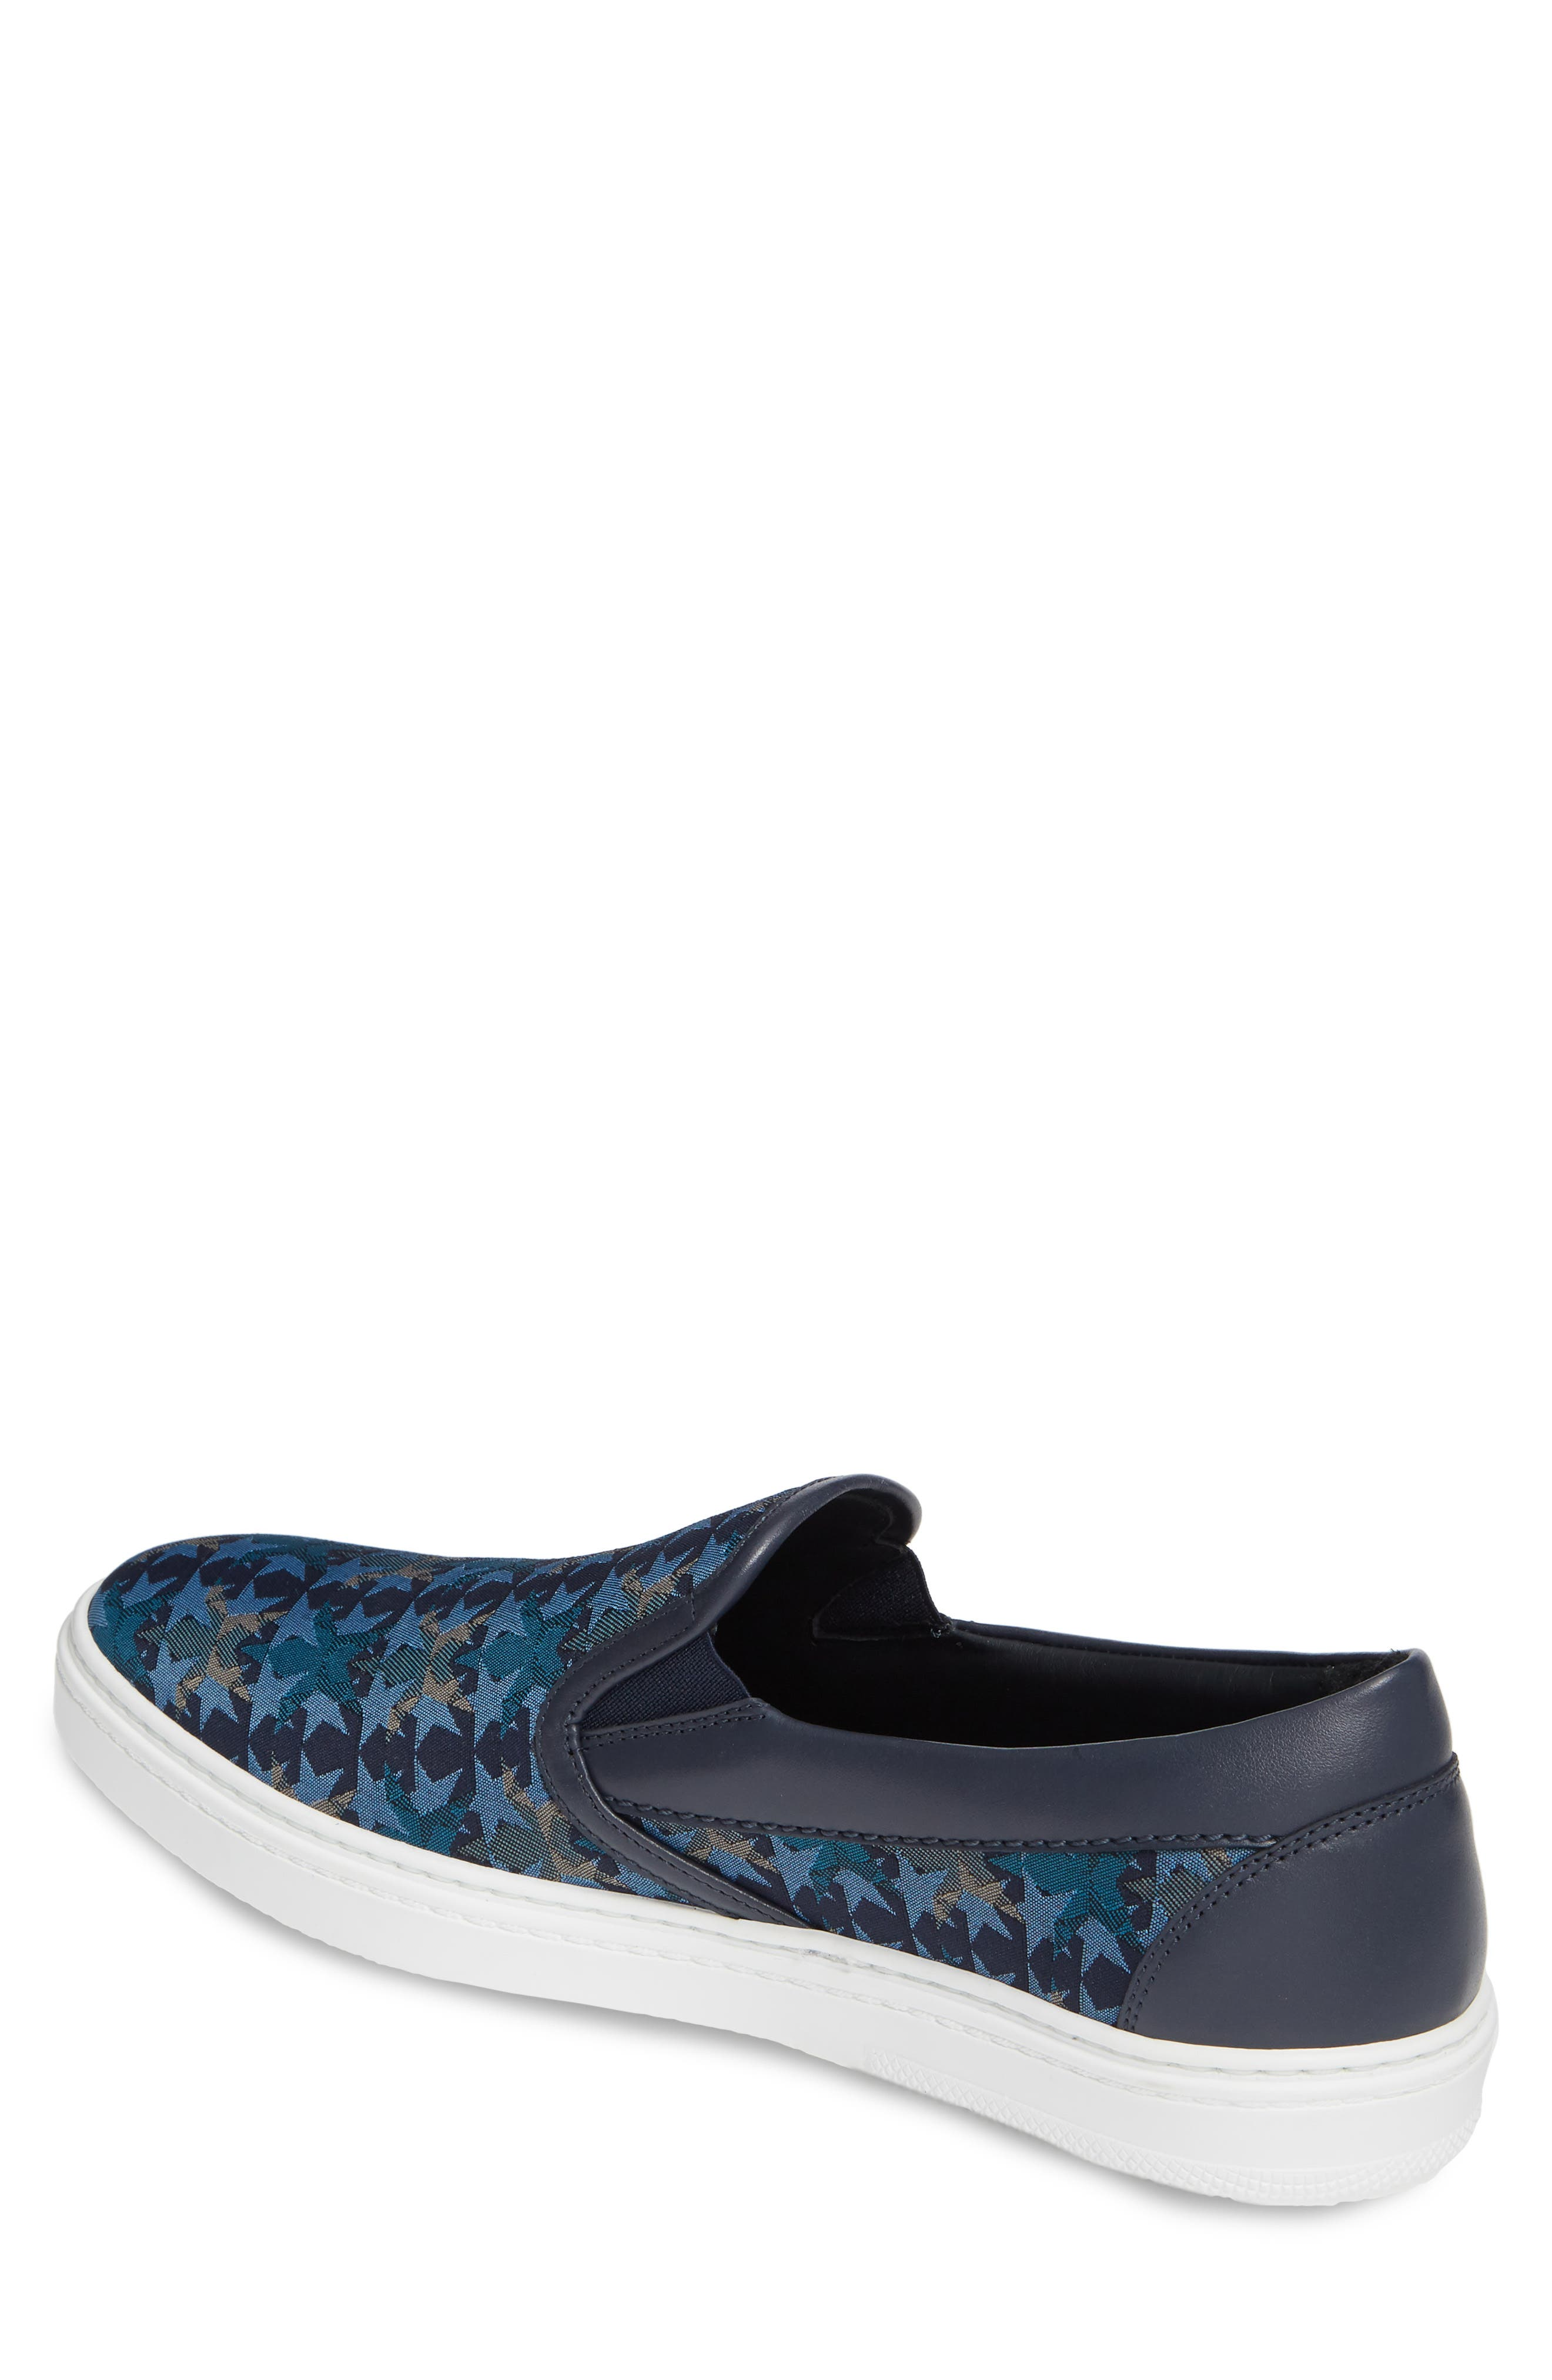 Grove Slip-On,                             Alternate thumbnail 2, color,                             NAVY MIX